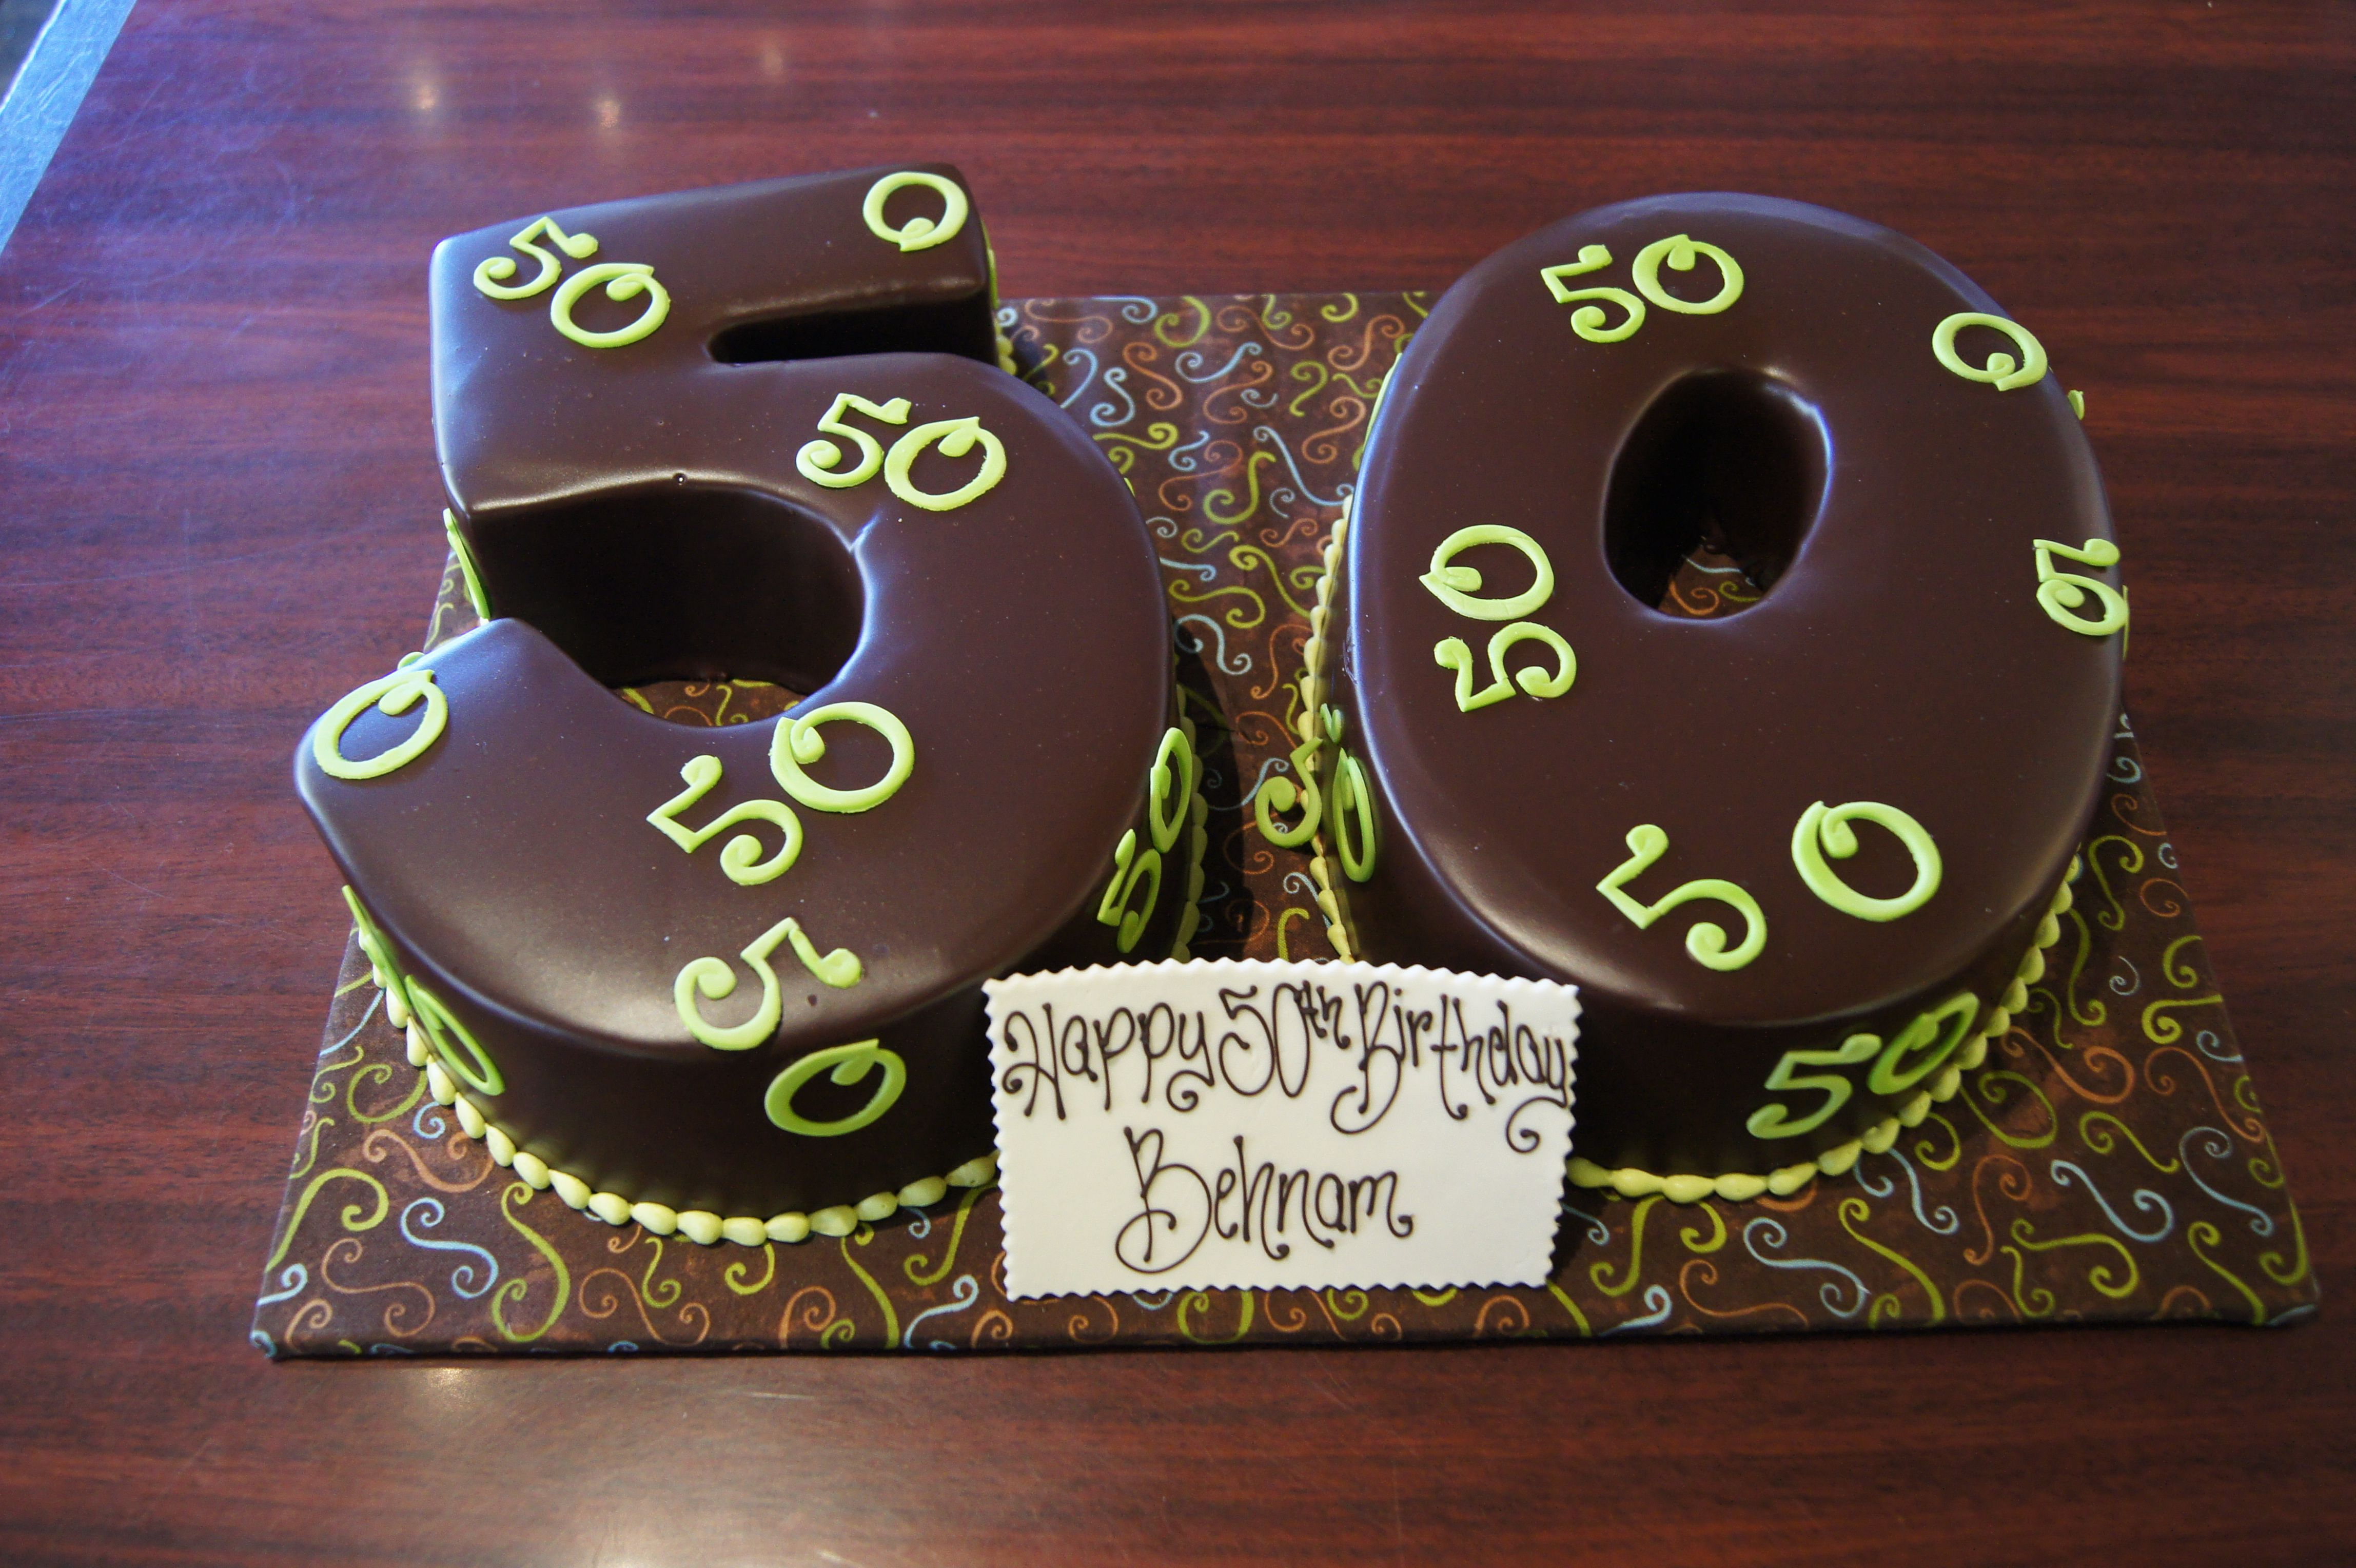 Magnificent Number 50 Shaped Chocolate Birthday Cakes With Neon Green Personalised Birthday Cards Sponlily Jamesorg